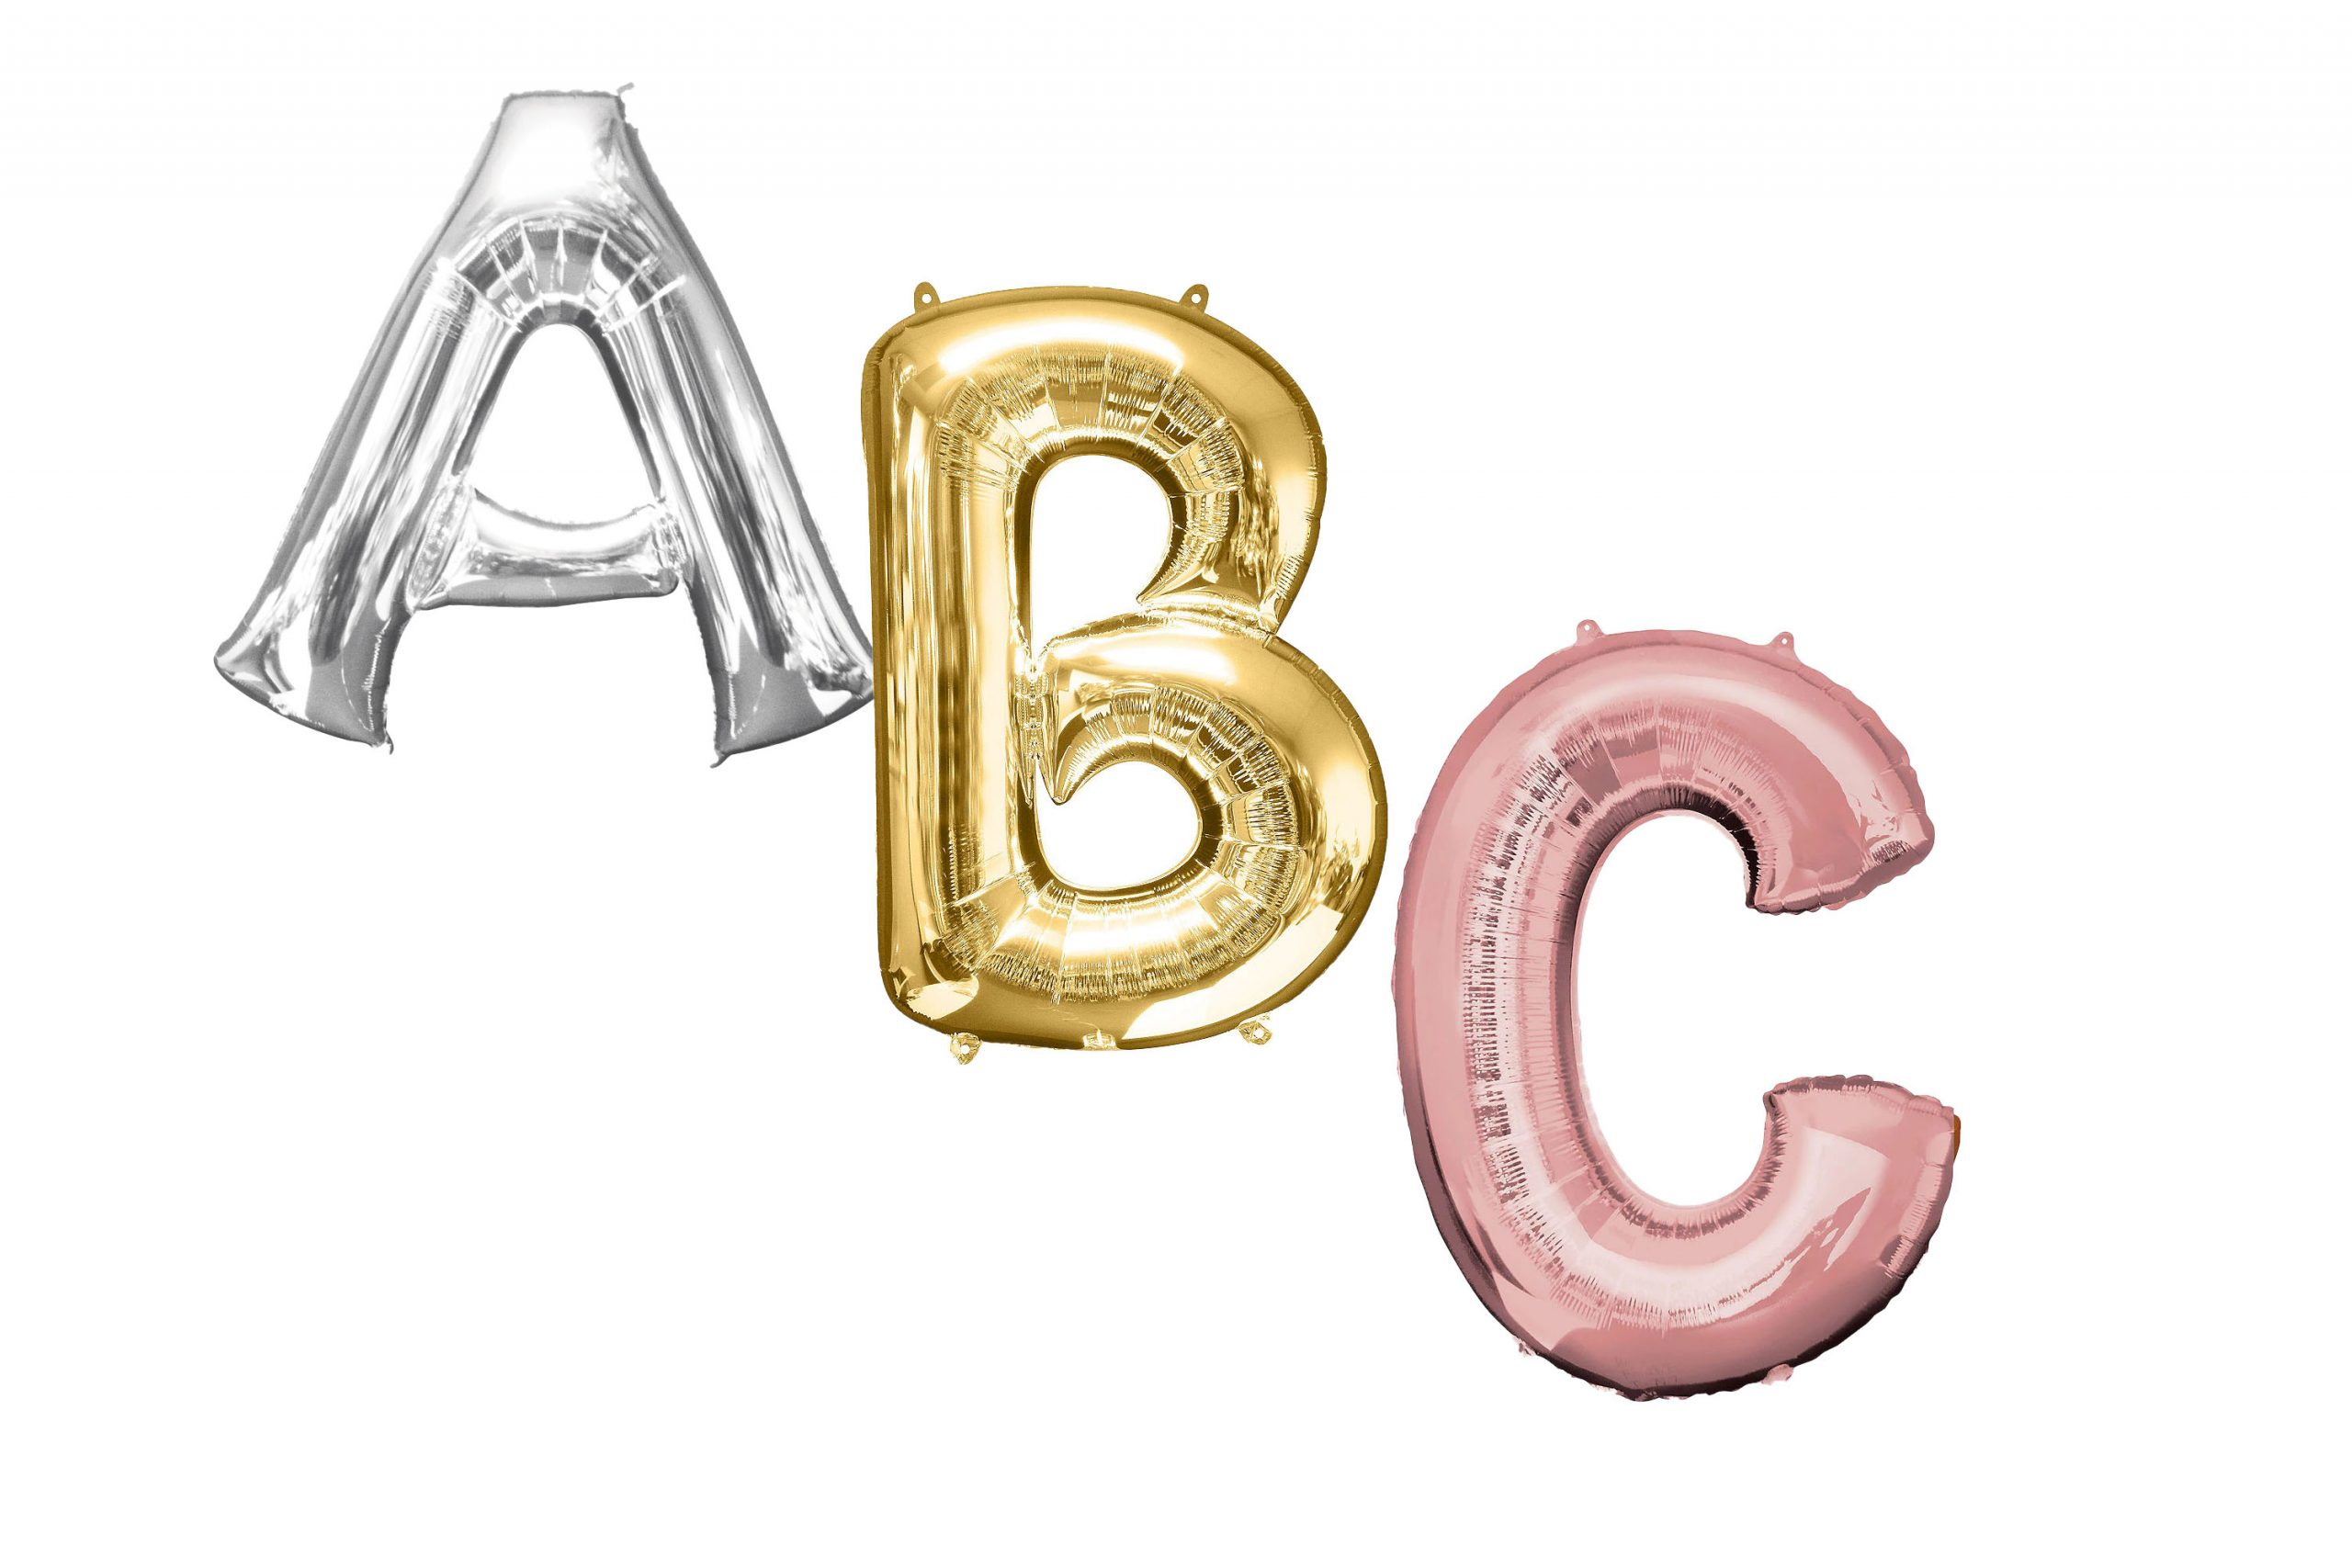 40 Inch Jumbo Helium Foil Mylar Balloons Banner for Baby Shower Party Glossy Gold Letters Baby Premium Quality